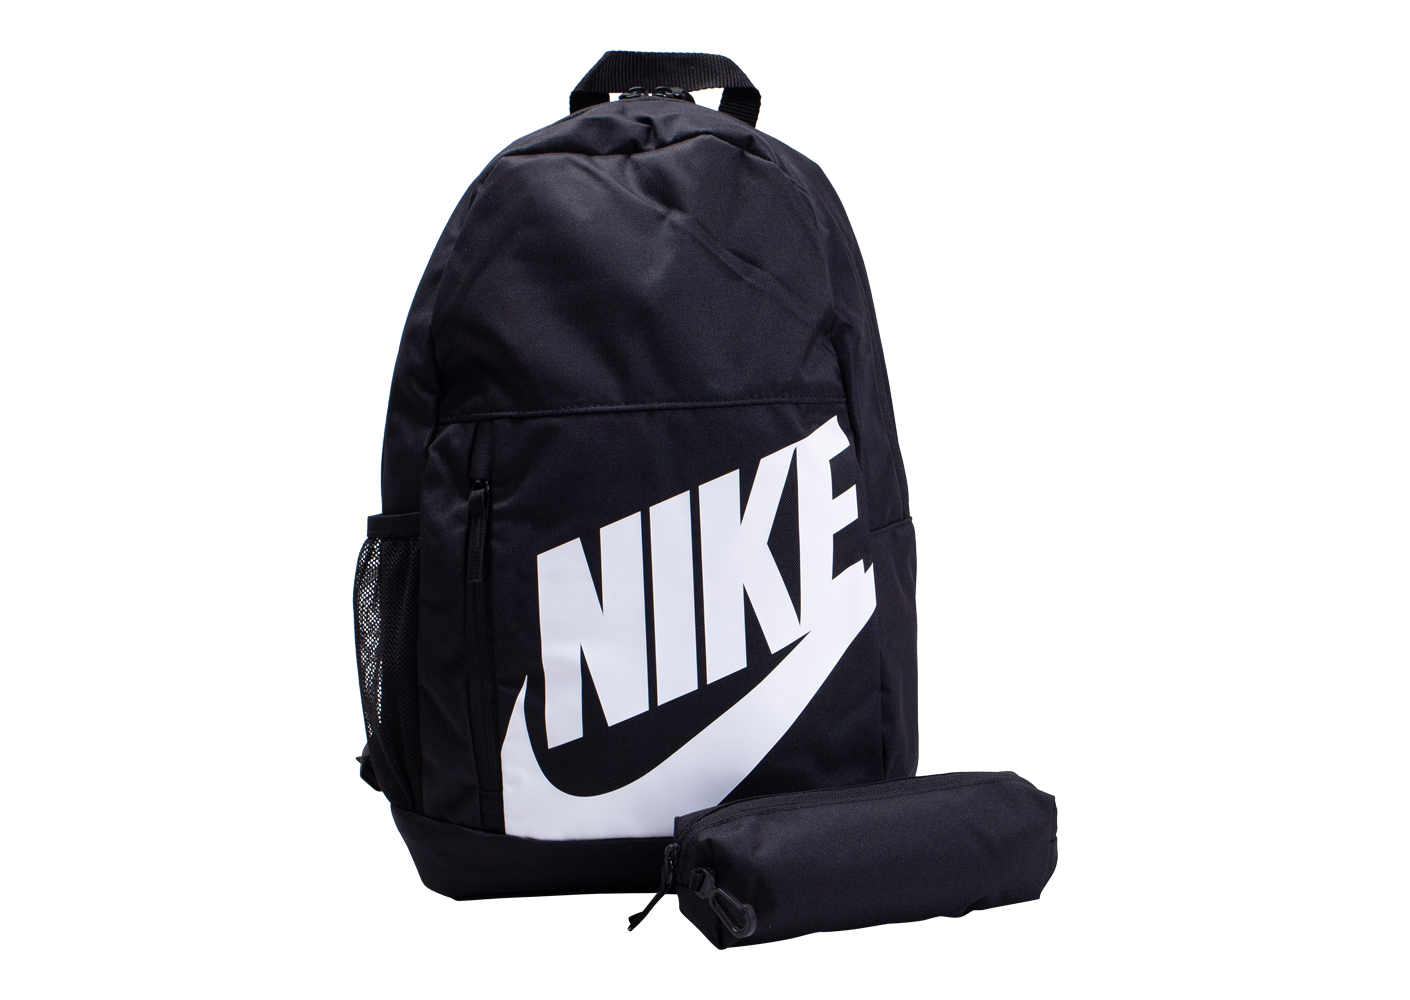 lace up in buy sale good selling Nike Sac à dos noir - Sacs & Sacoches - Chausport